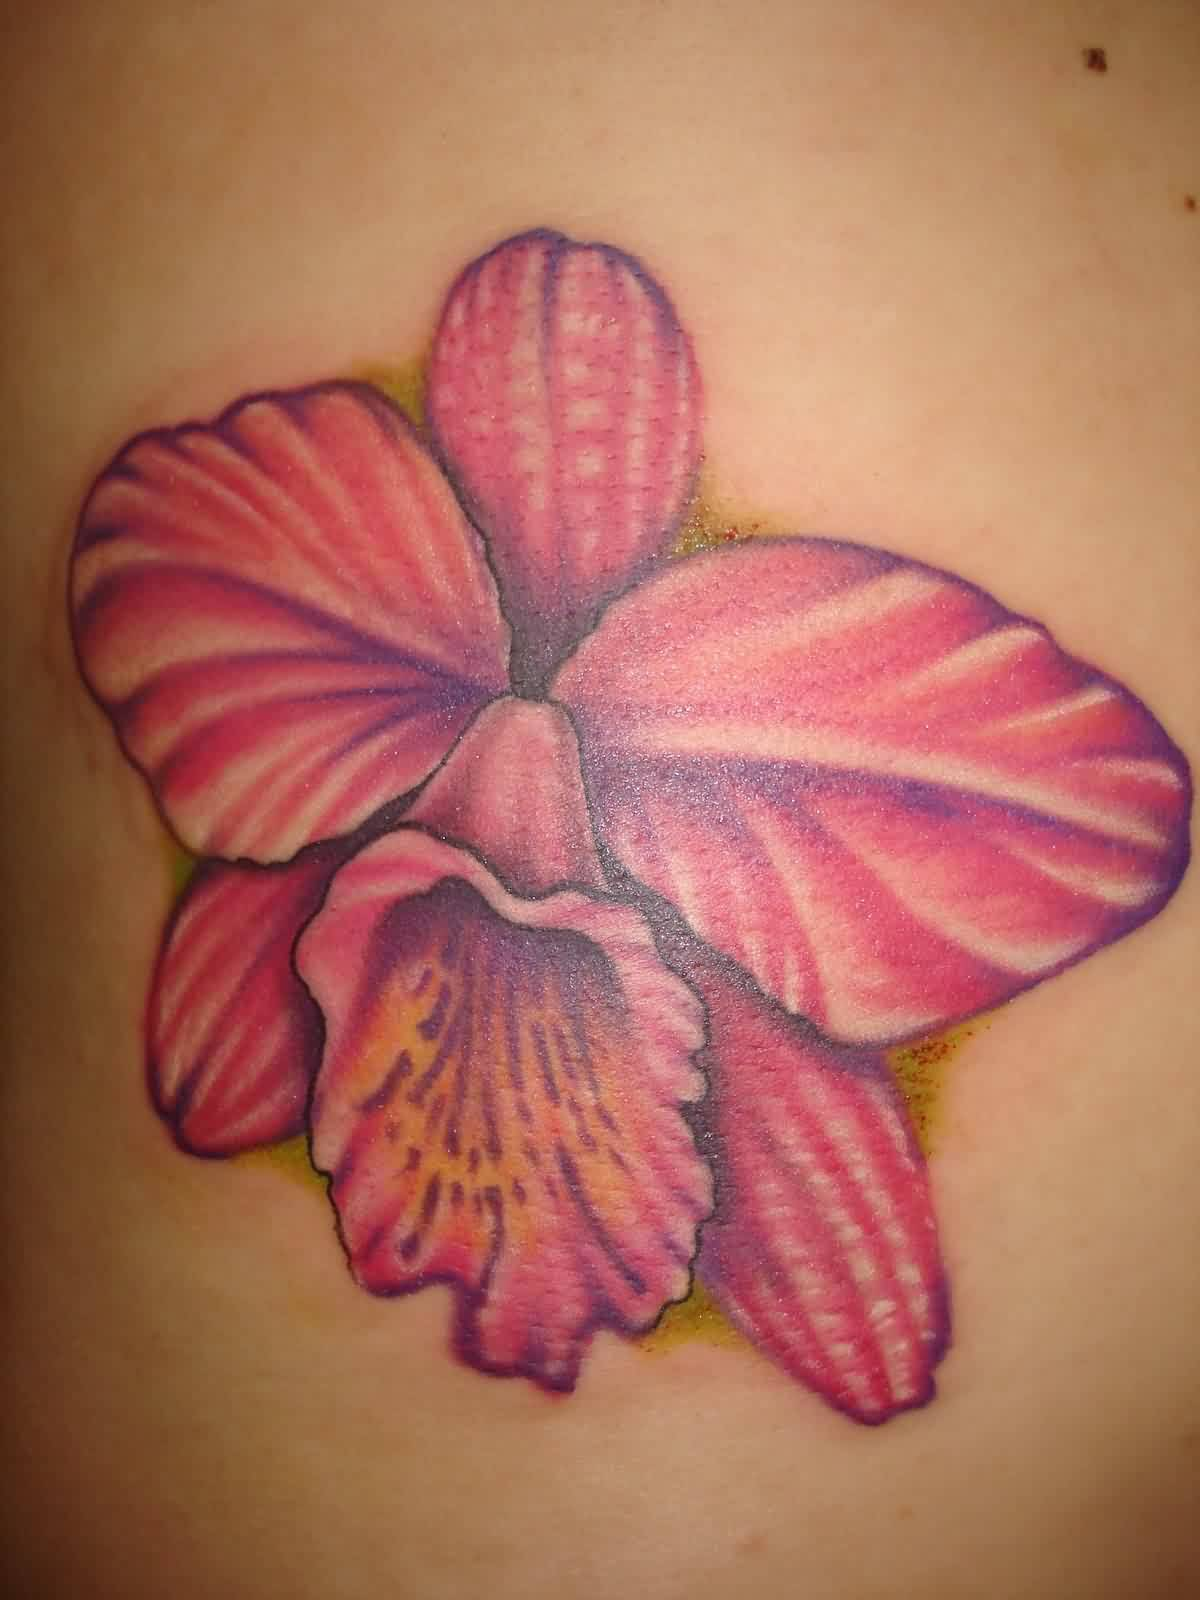 Lovely Pink Tulip Tattoo